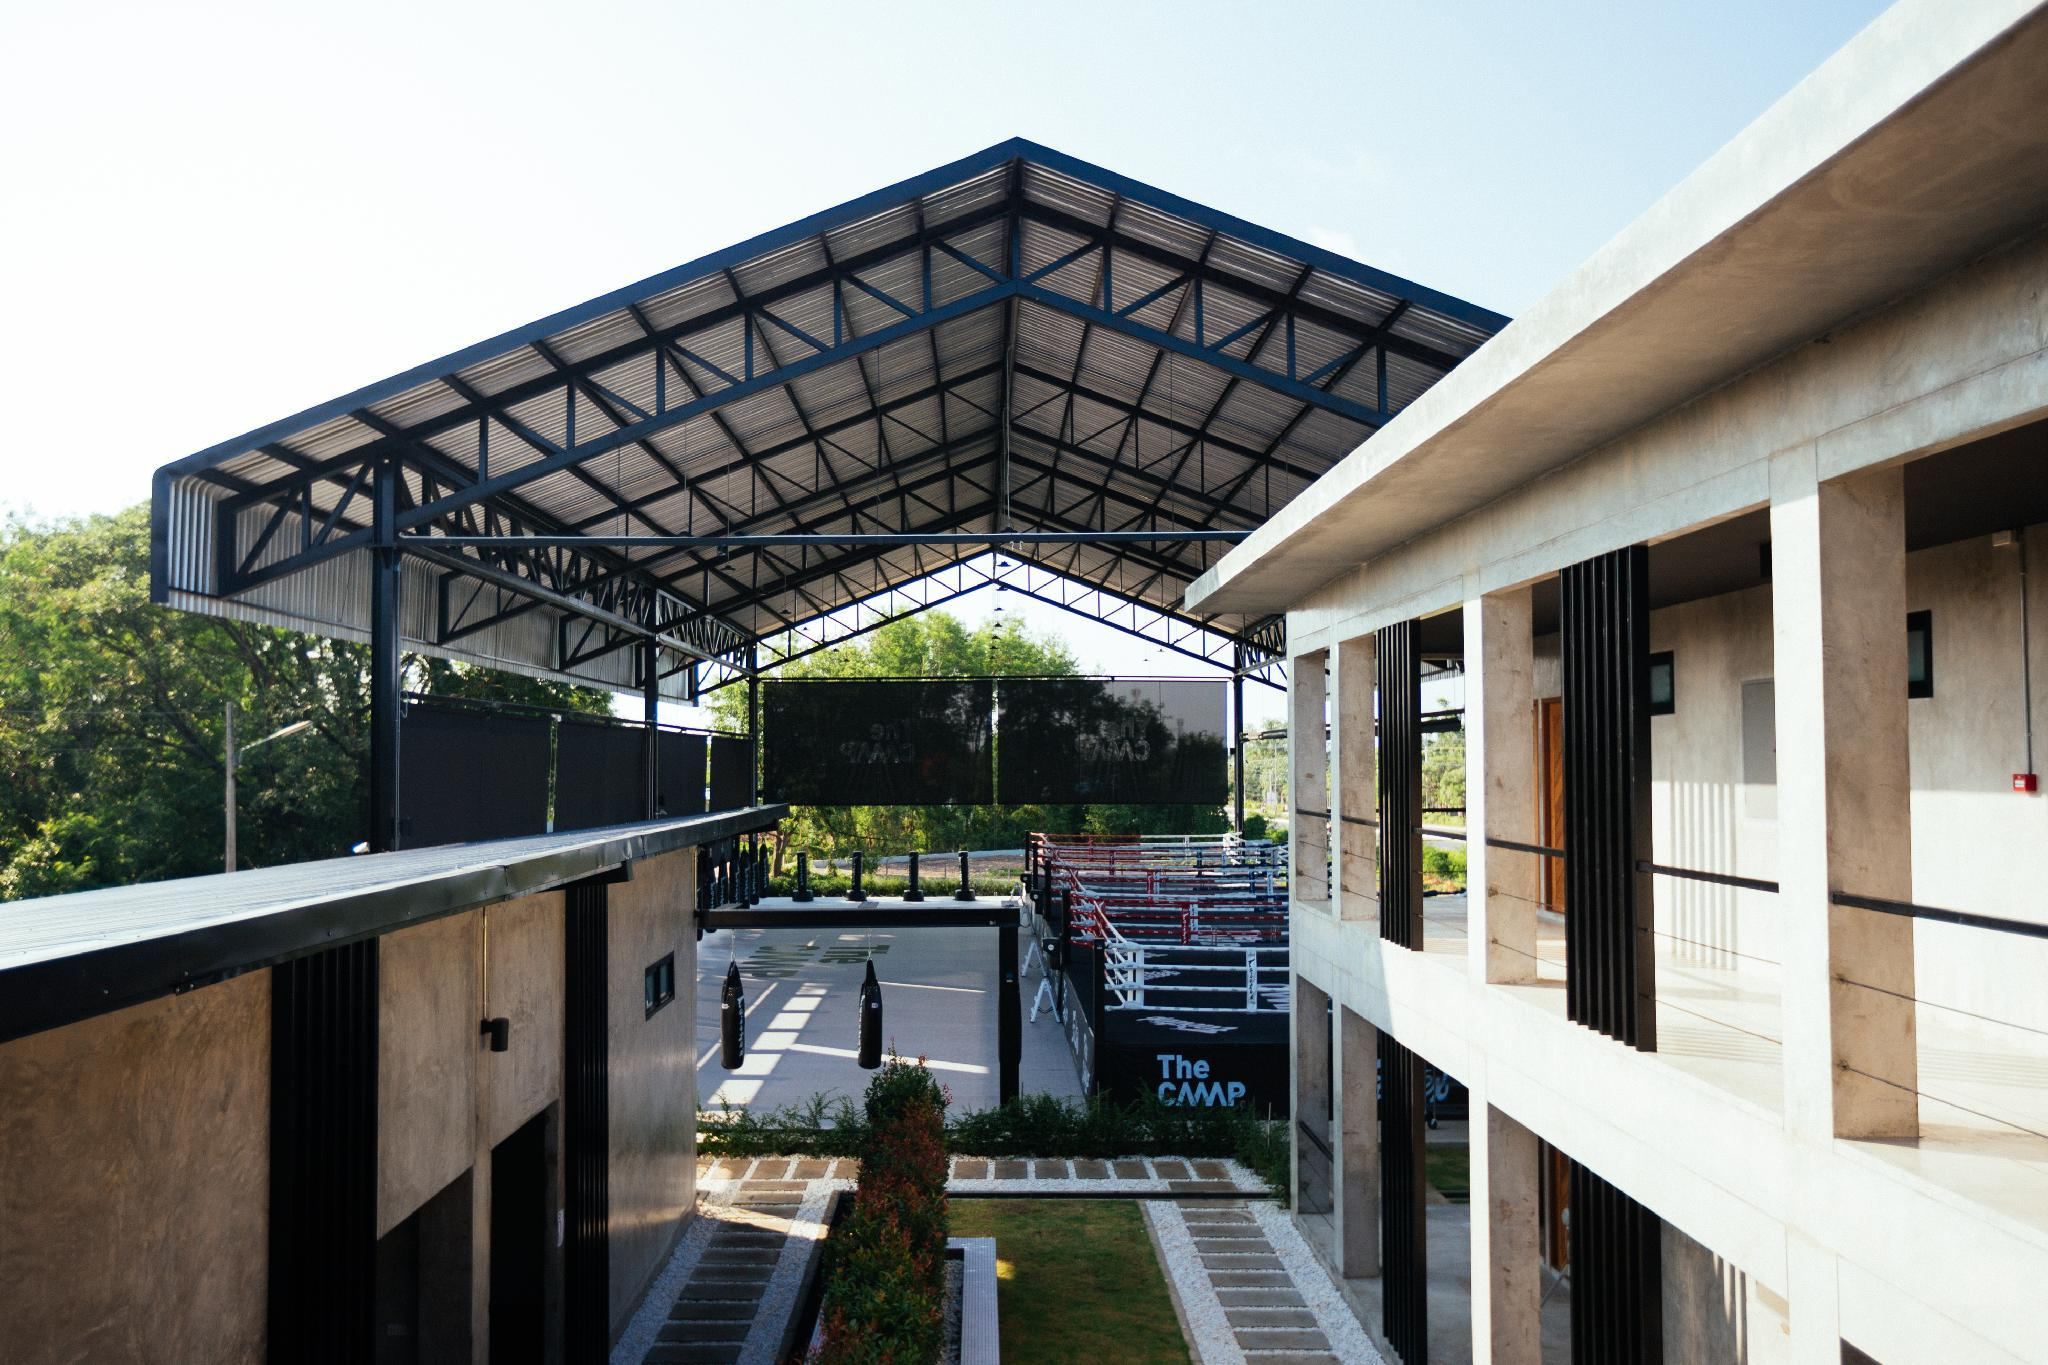 The Camp Muay Thai Resort and Academy, Hang Dong